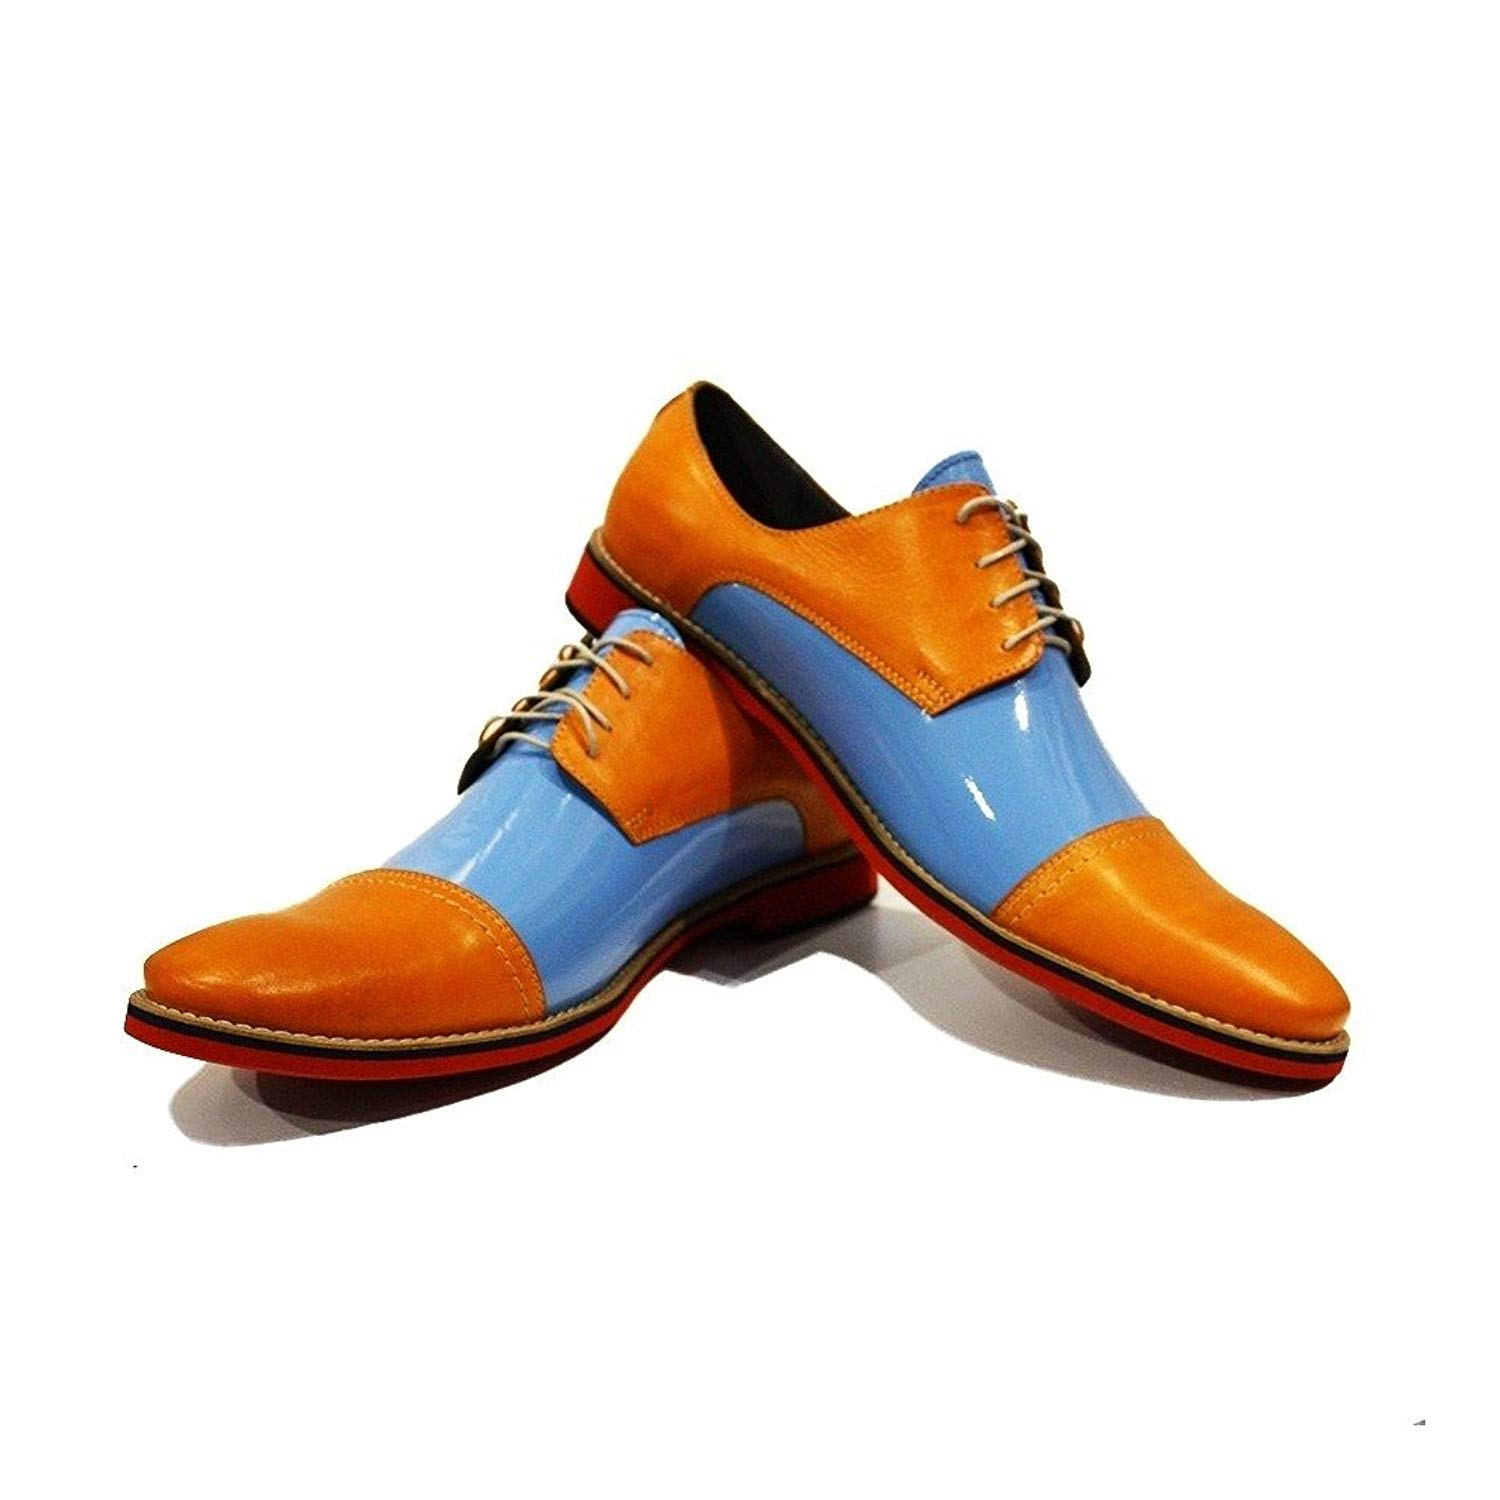 Modello Vito - Handmade Italian Mens Orange Oxfords Dress Shoes - Cowhide Patent Leather - Lace-up